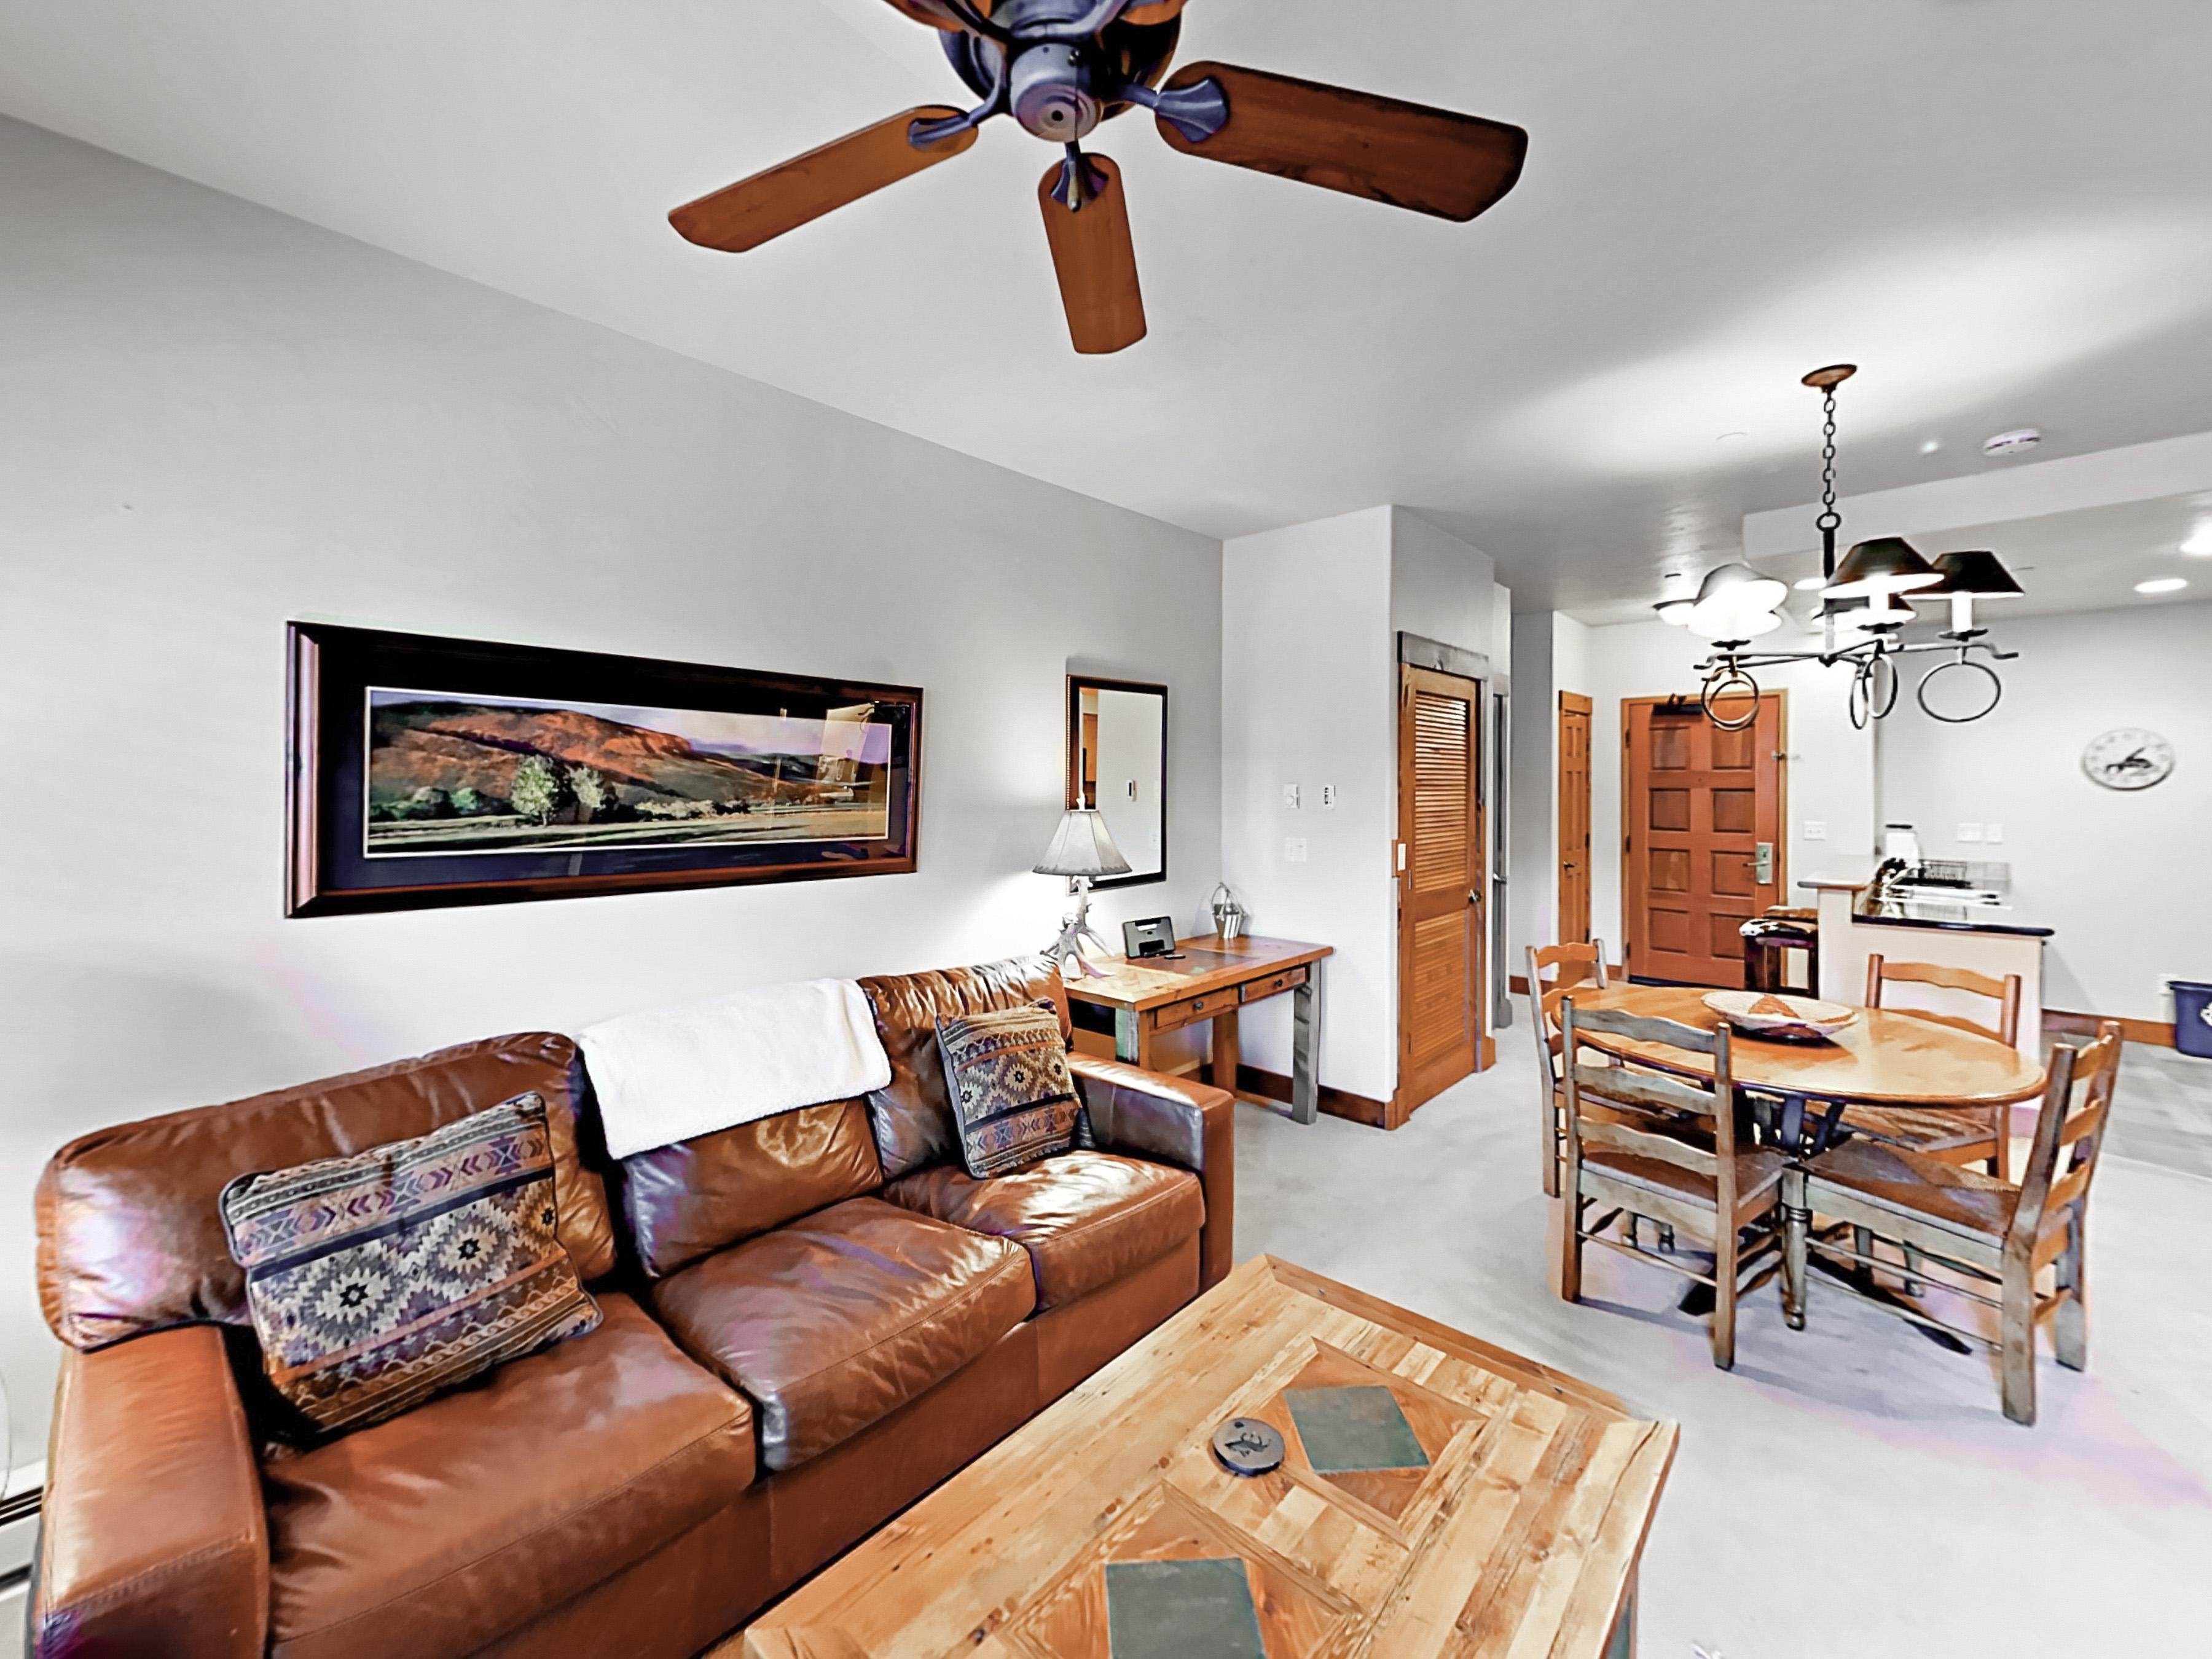 Comfortable leather couch and chair, plus coffee table for board or card games. Complimentary Wi-Fi is provided.